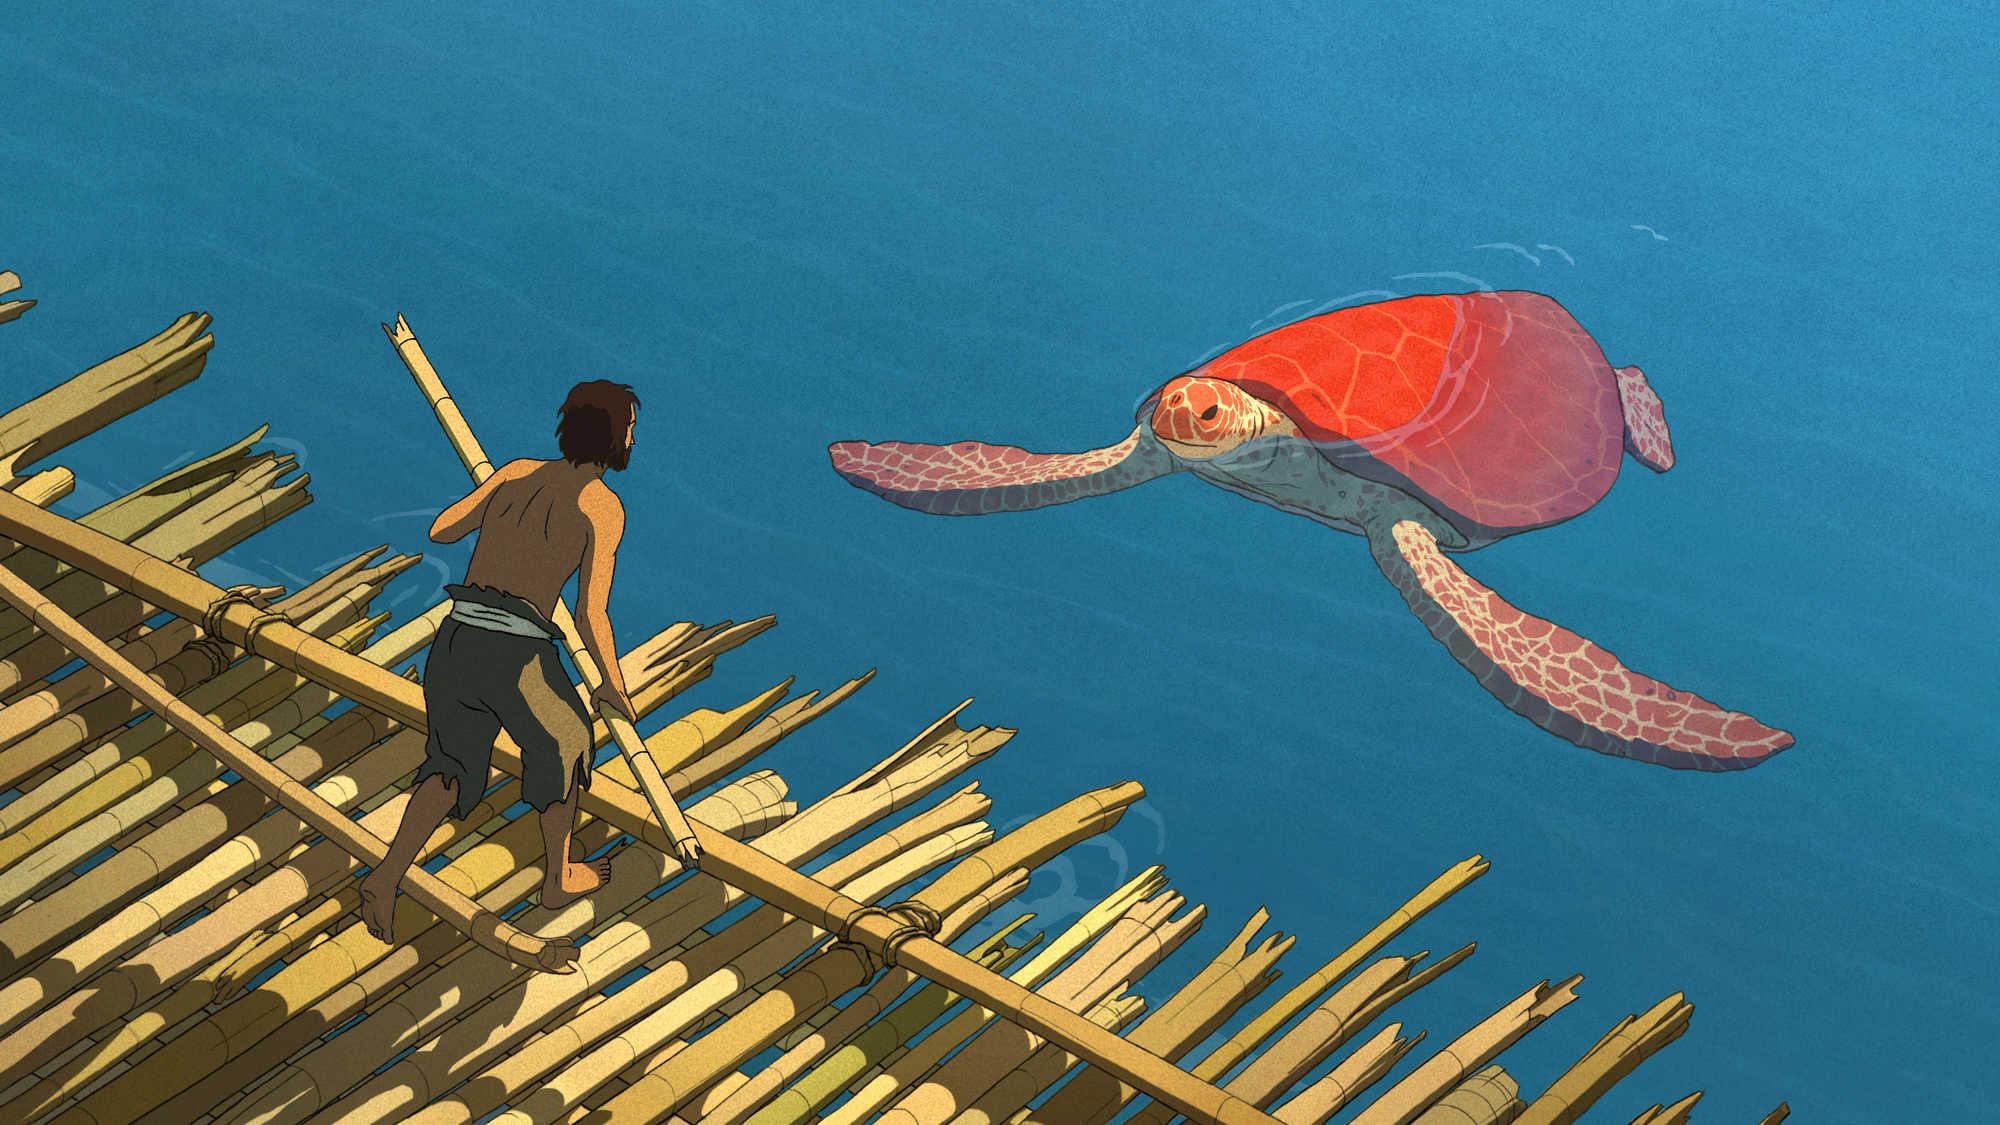 The Red Turtle (image 1)